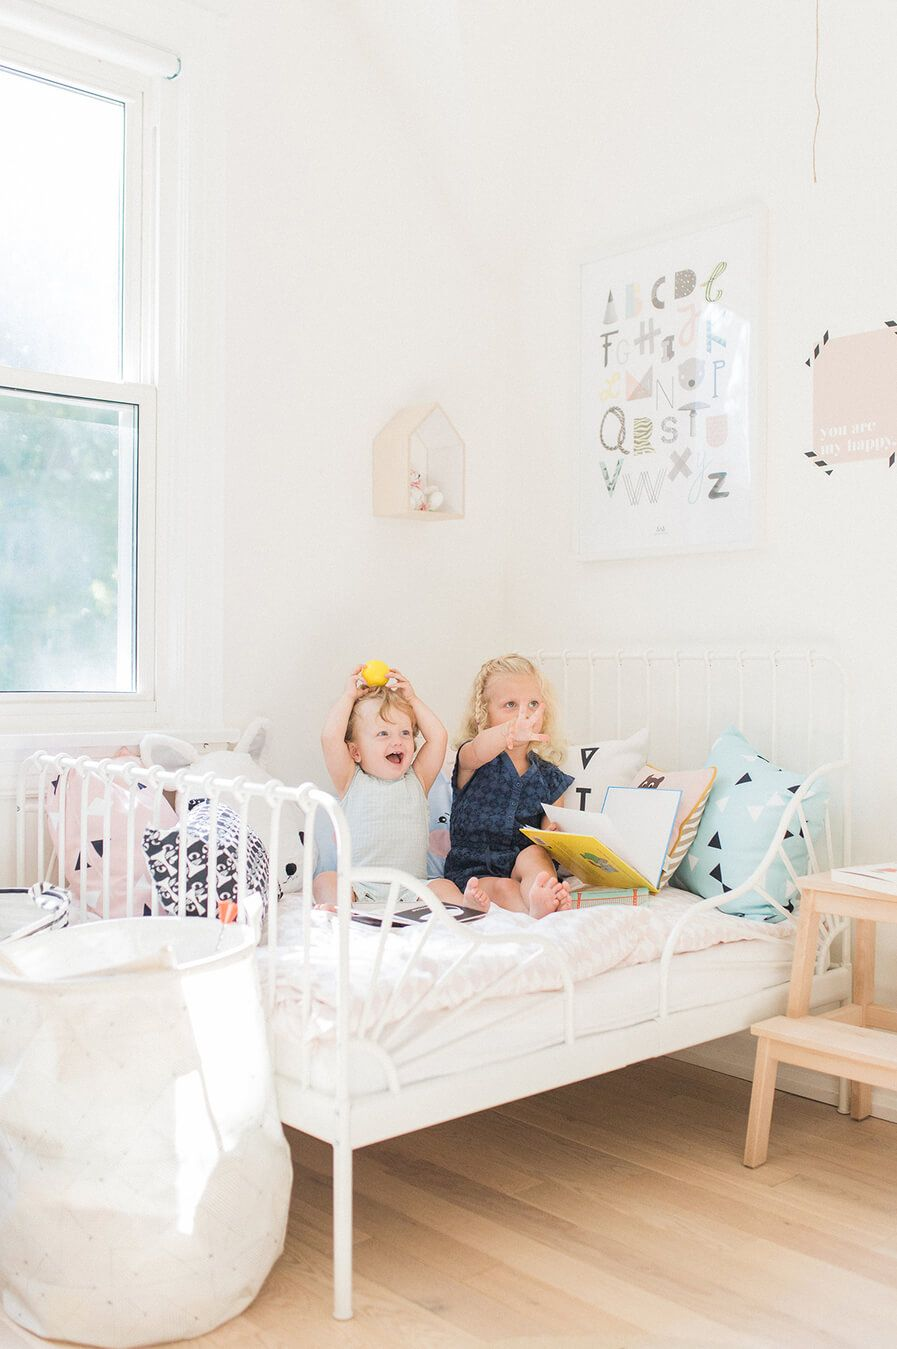 A wonderful baby and toddler shared kids room images